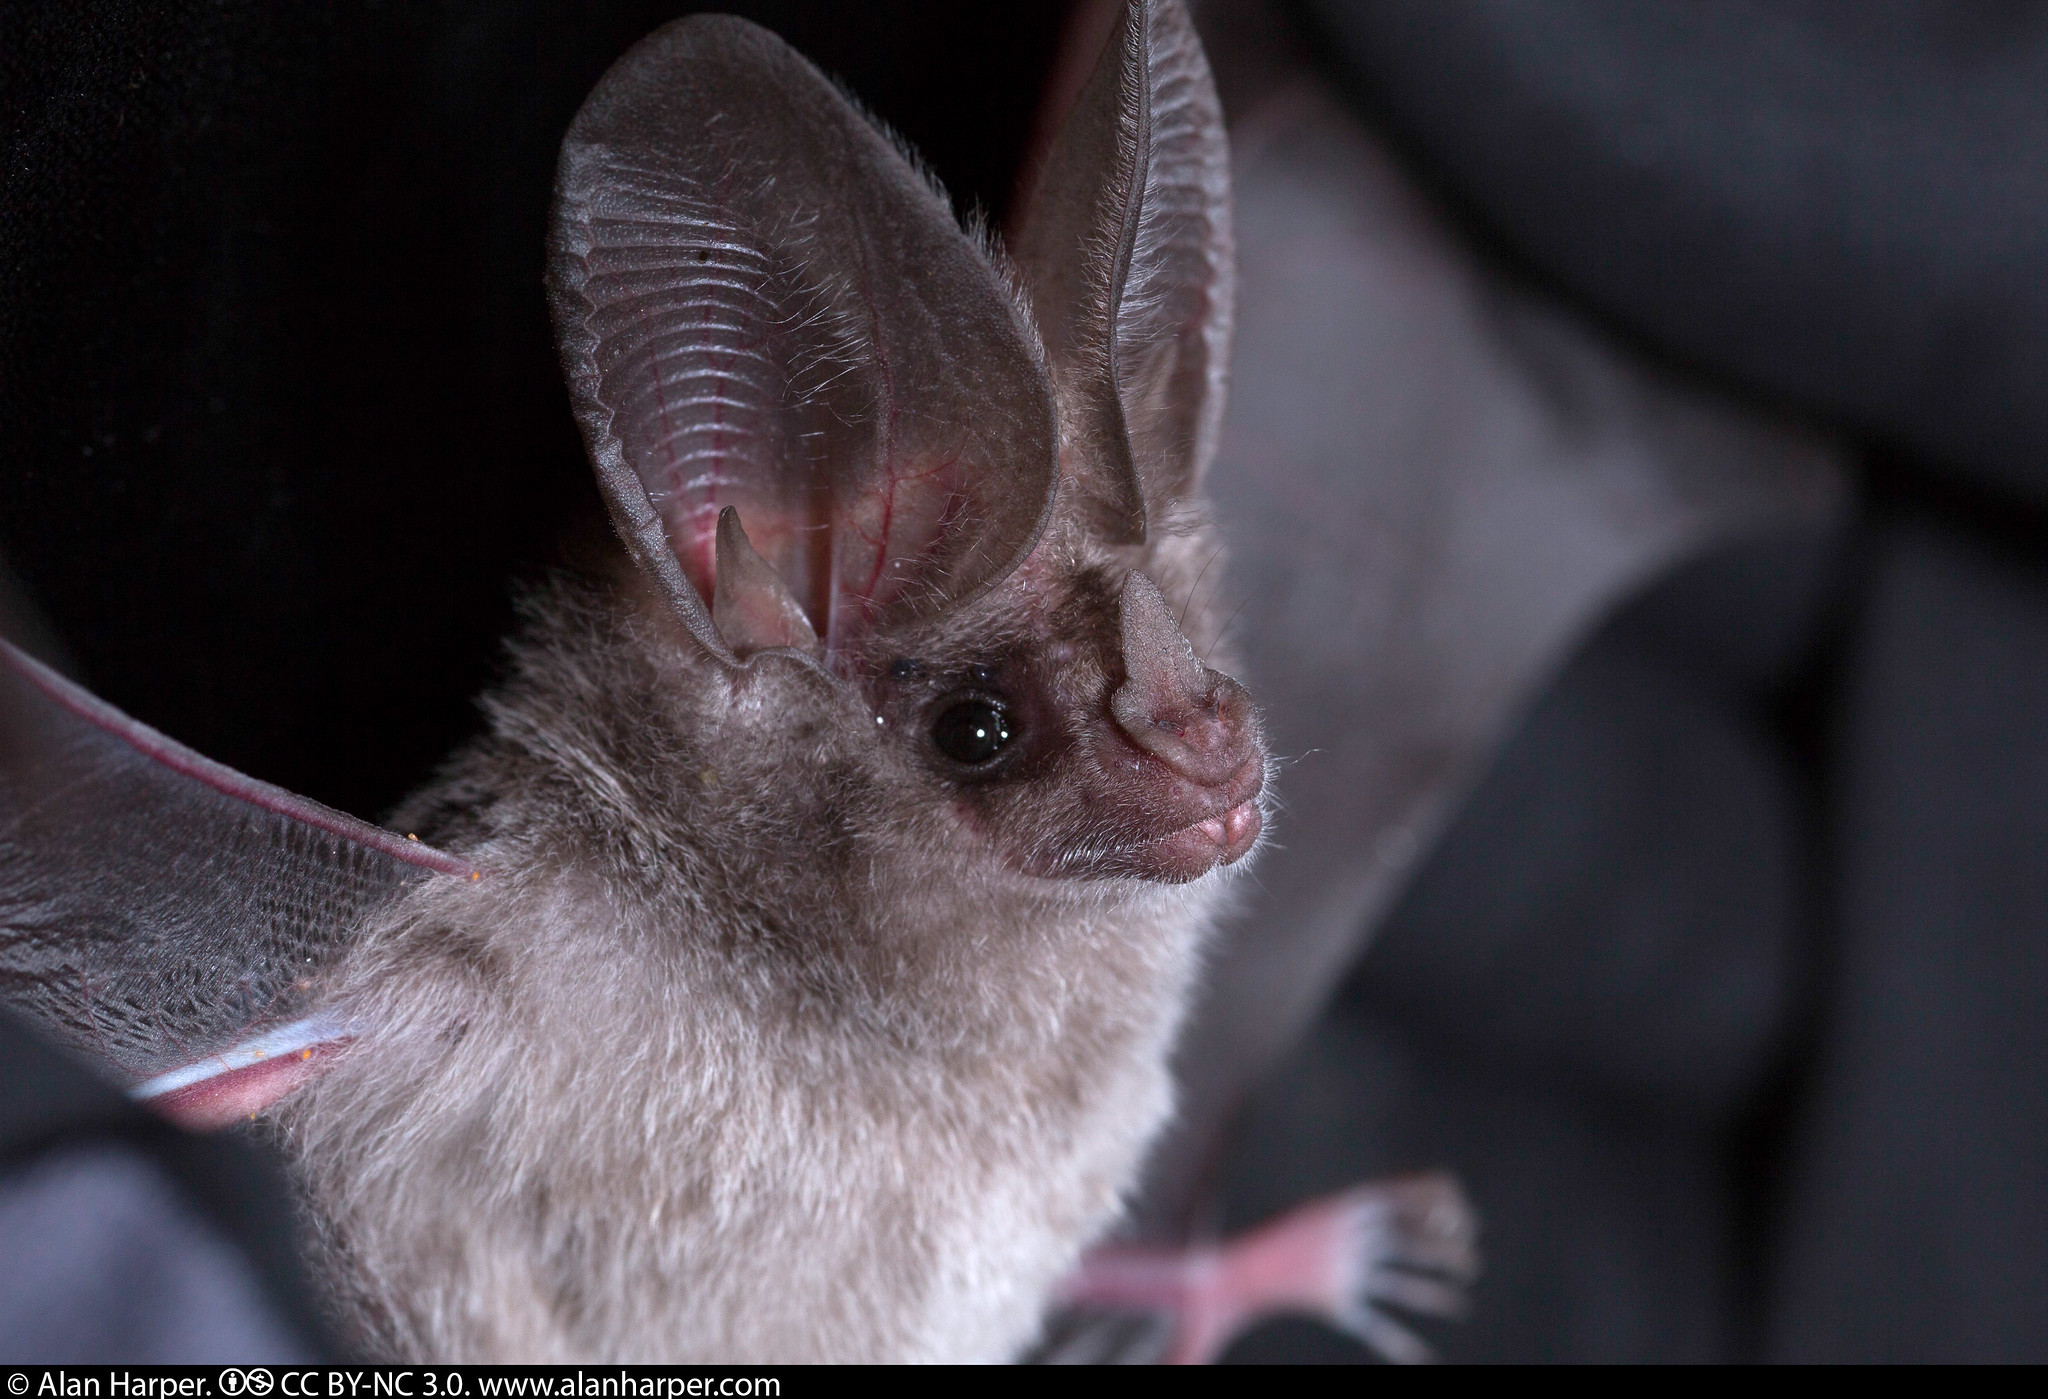 California leaf-nosed bat. Image credit: Alan Harper via Flickr, CC BY-NC 2.0